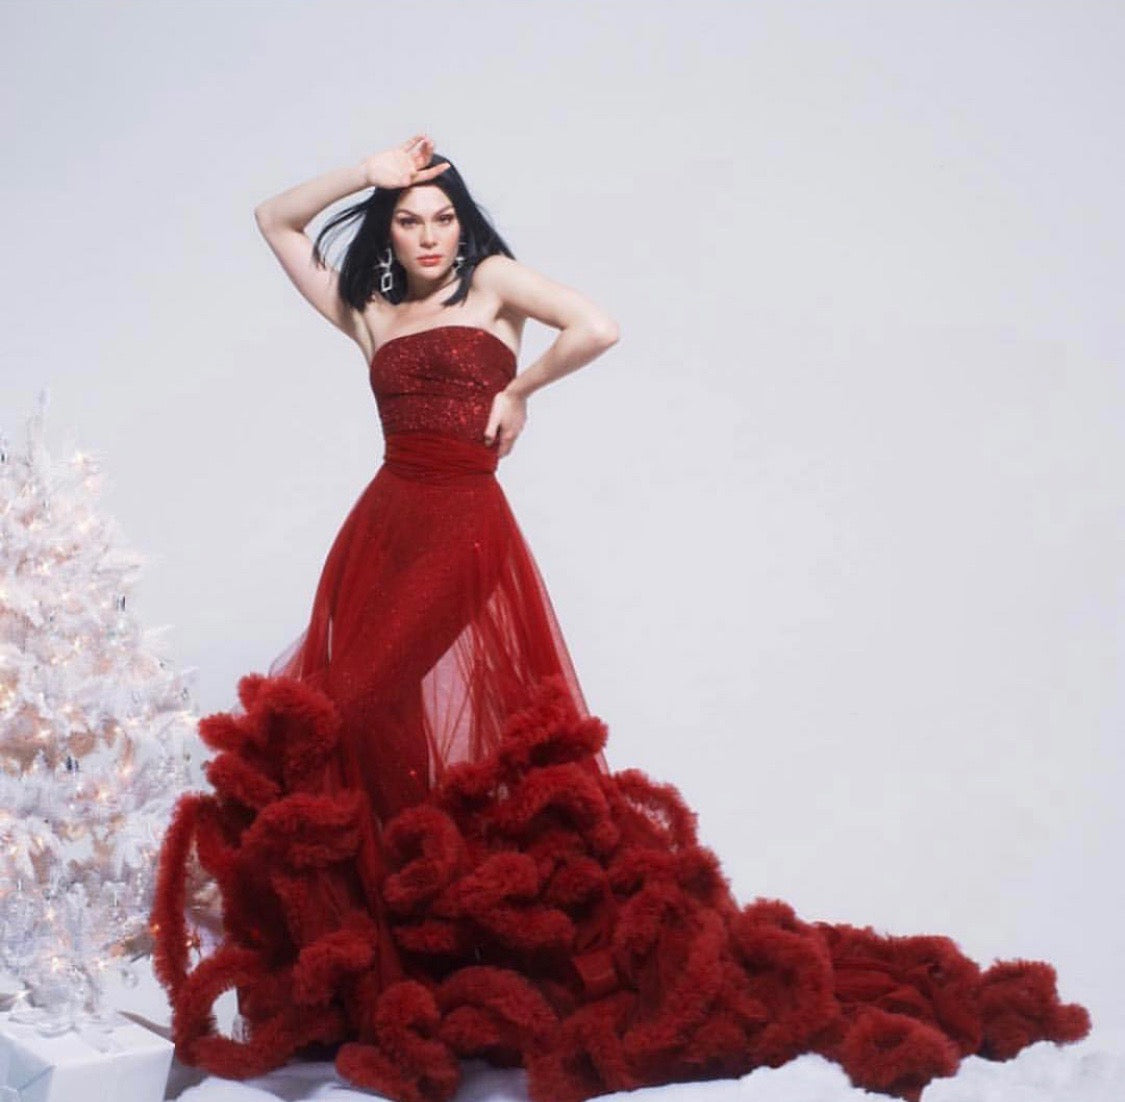 Jessie J Christmas Album Cover 2018